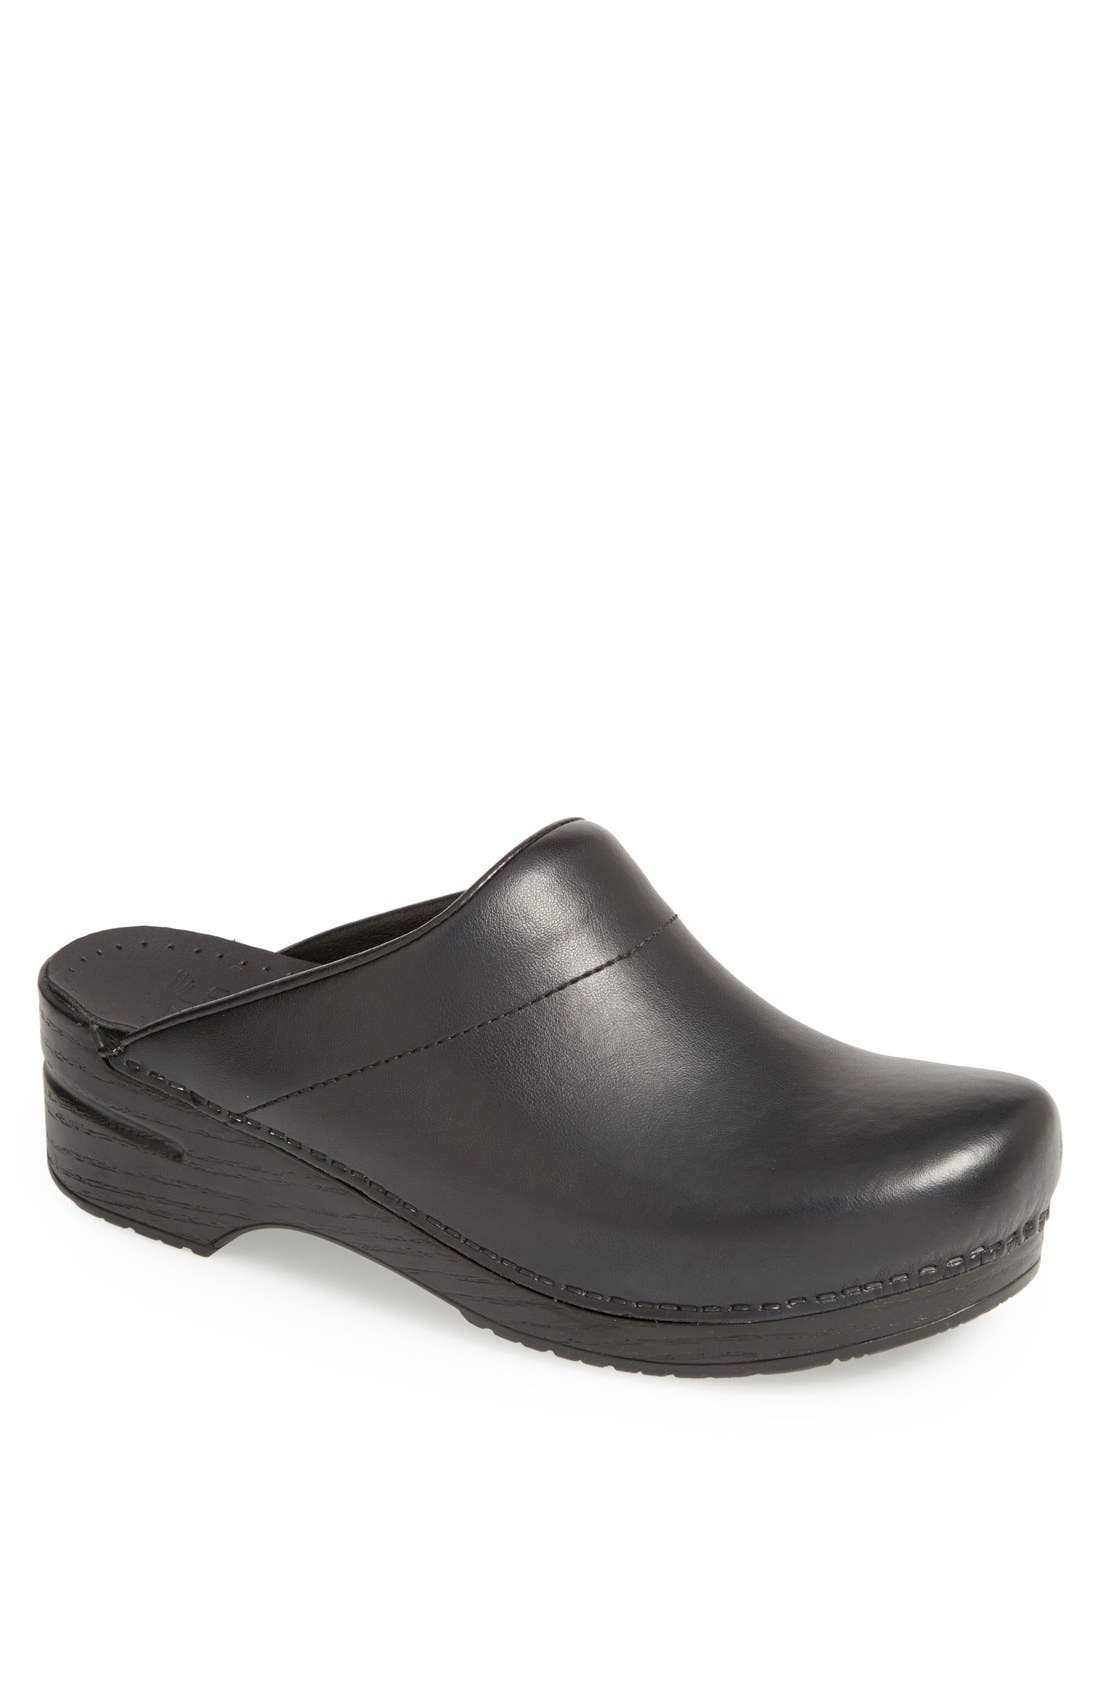 'Karl' Slip-On,                             Main thumbnail 1, color,                             Black Box